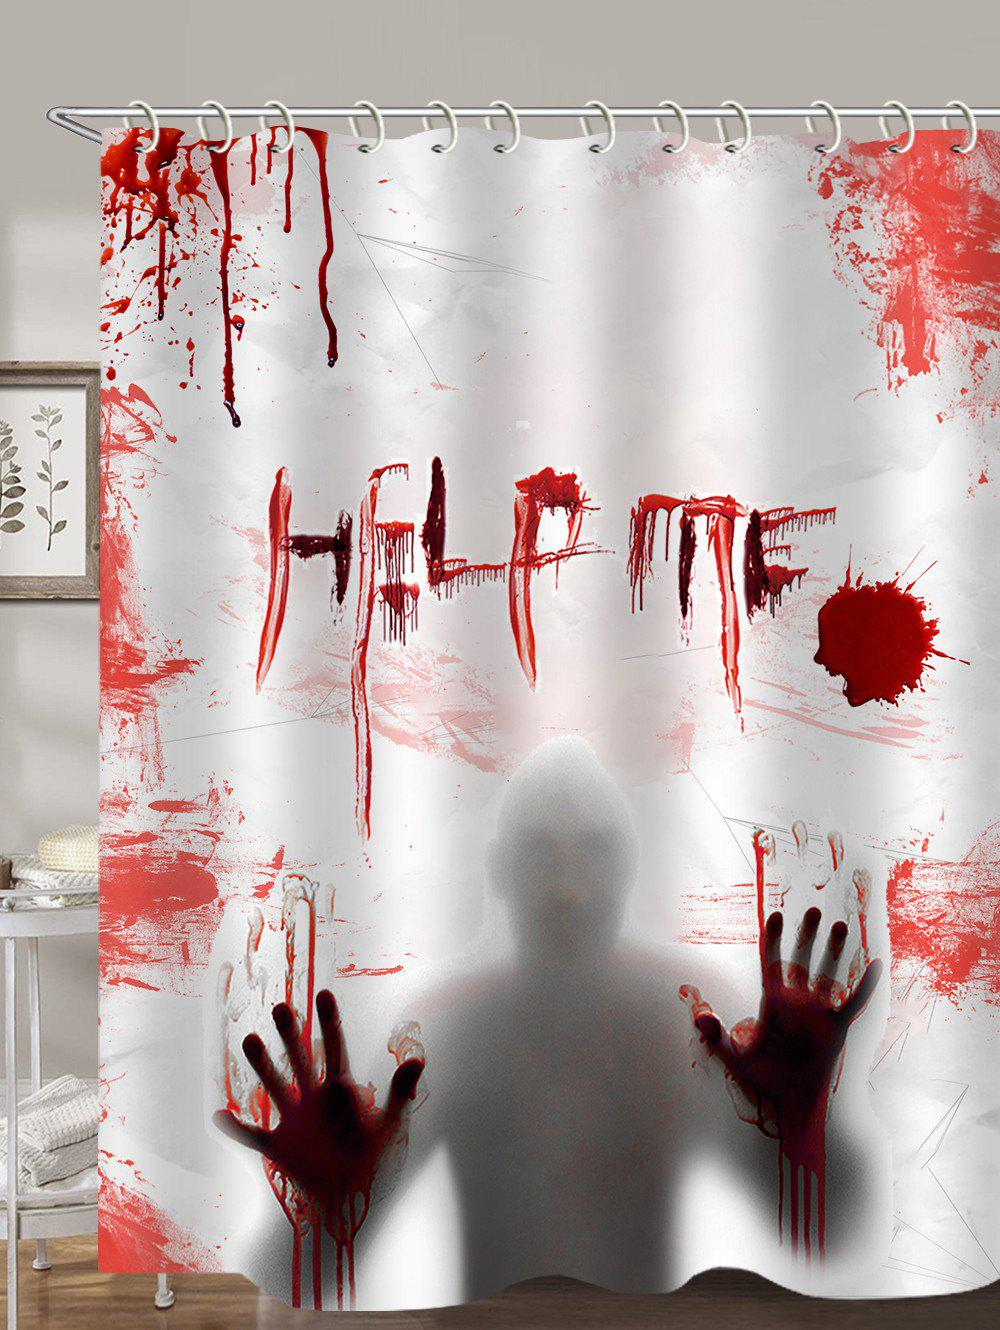 Halloween Blood Fingerprints Shadow Waterproof Shower Curtain - multicolor W71 X L71 INCH